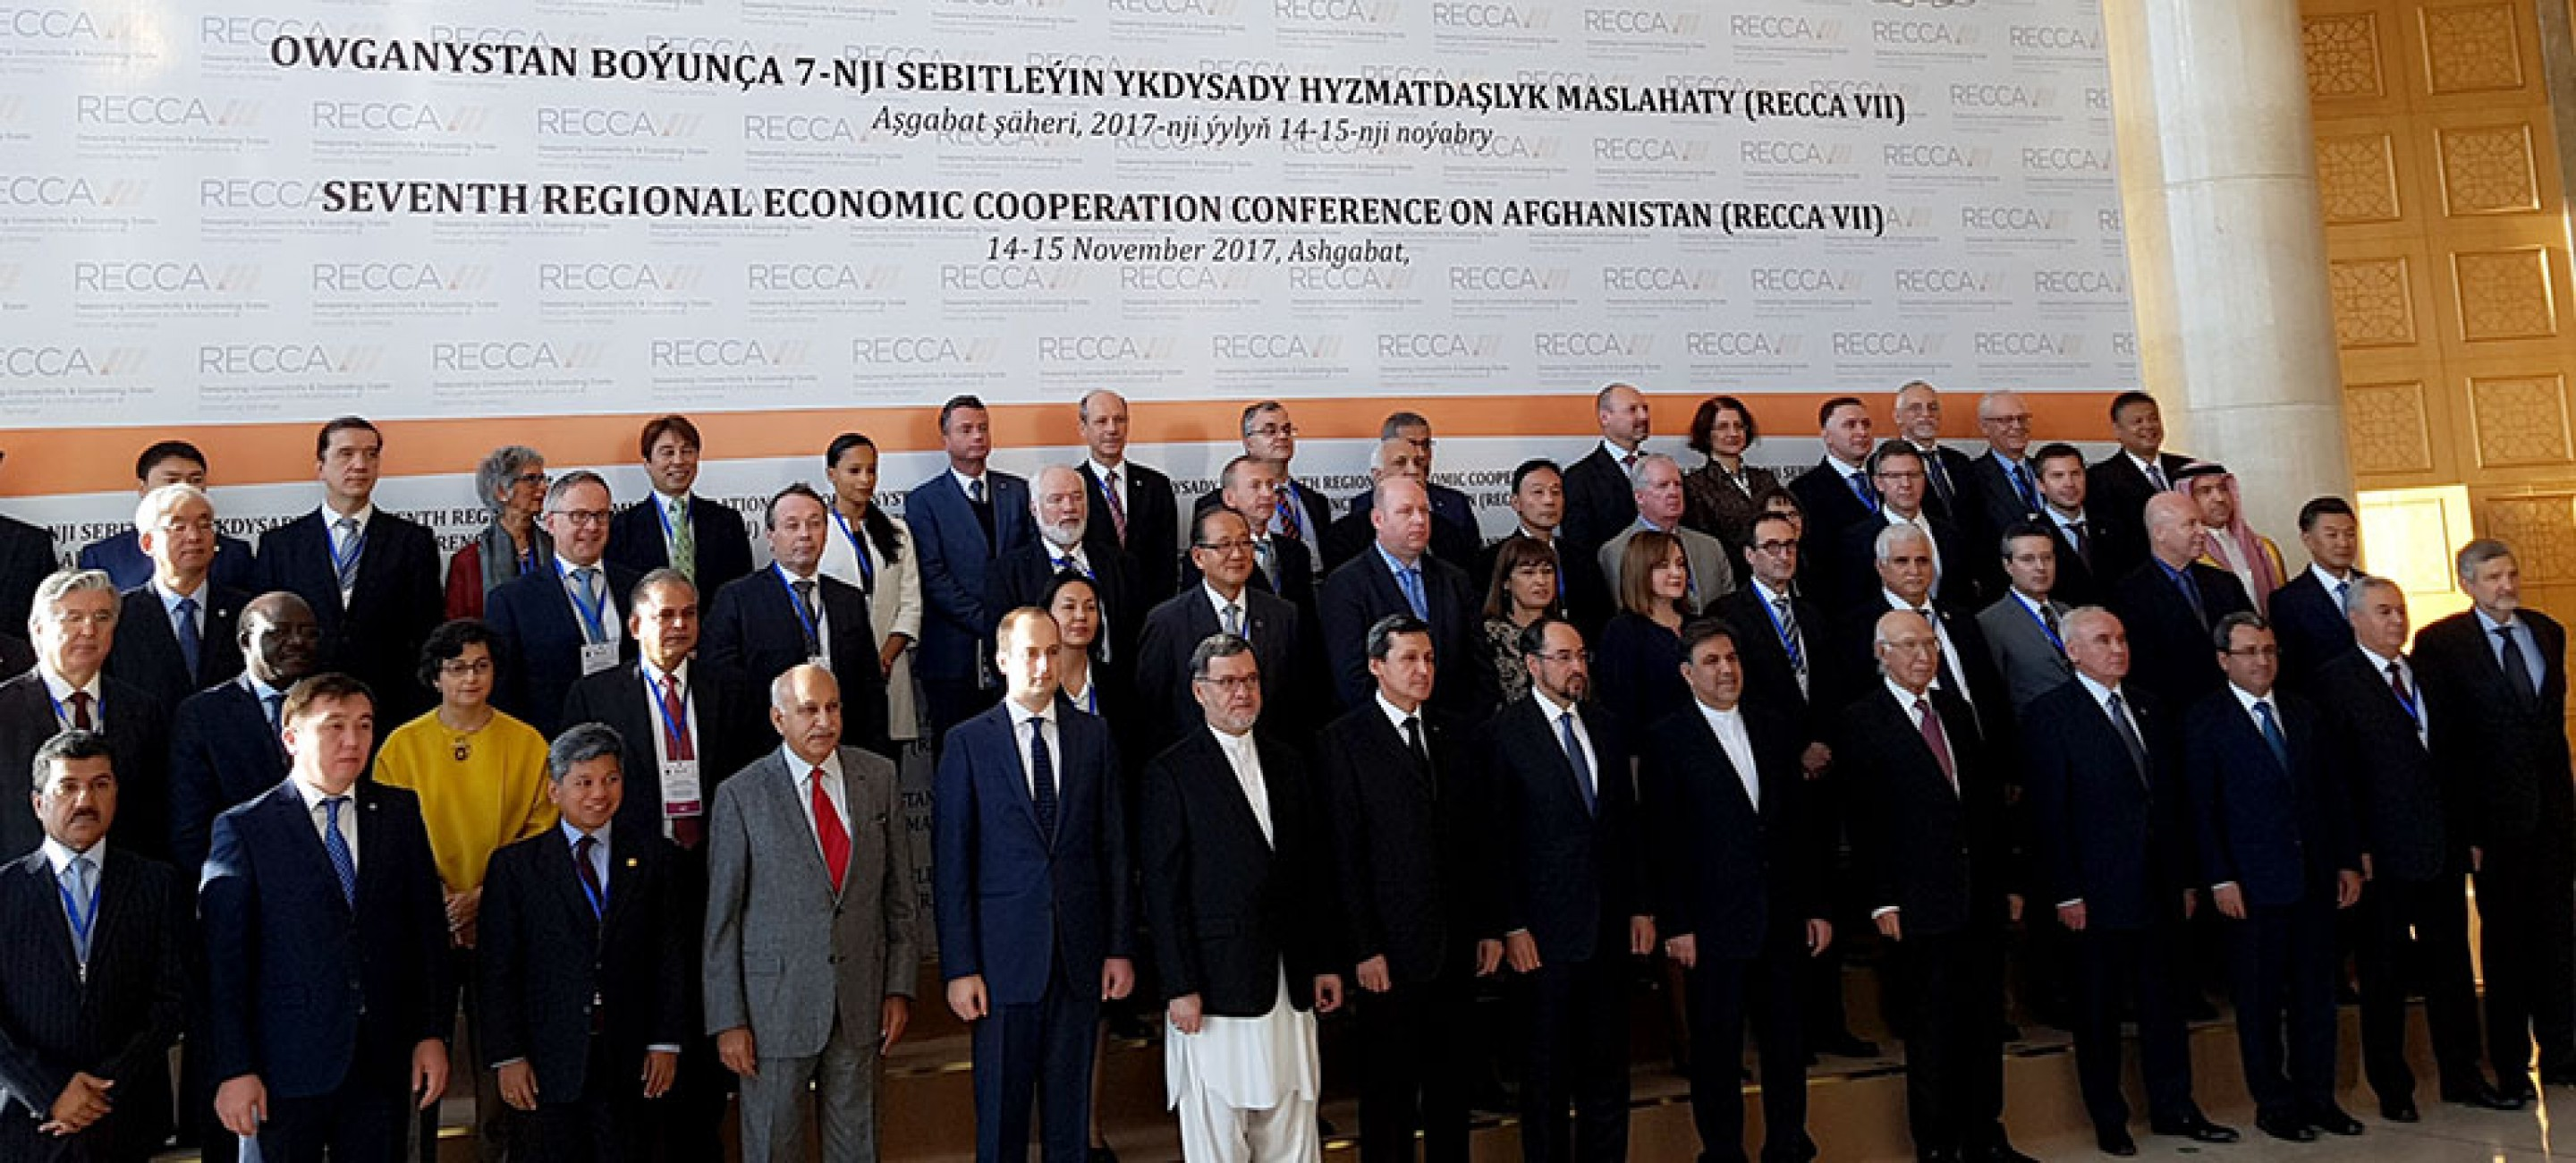 THE REGIONAL ECONOMIC COOPERATION CONFERENCE ON AFGHANISTAN (RECCA VII) HELD IN ASHGABAT